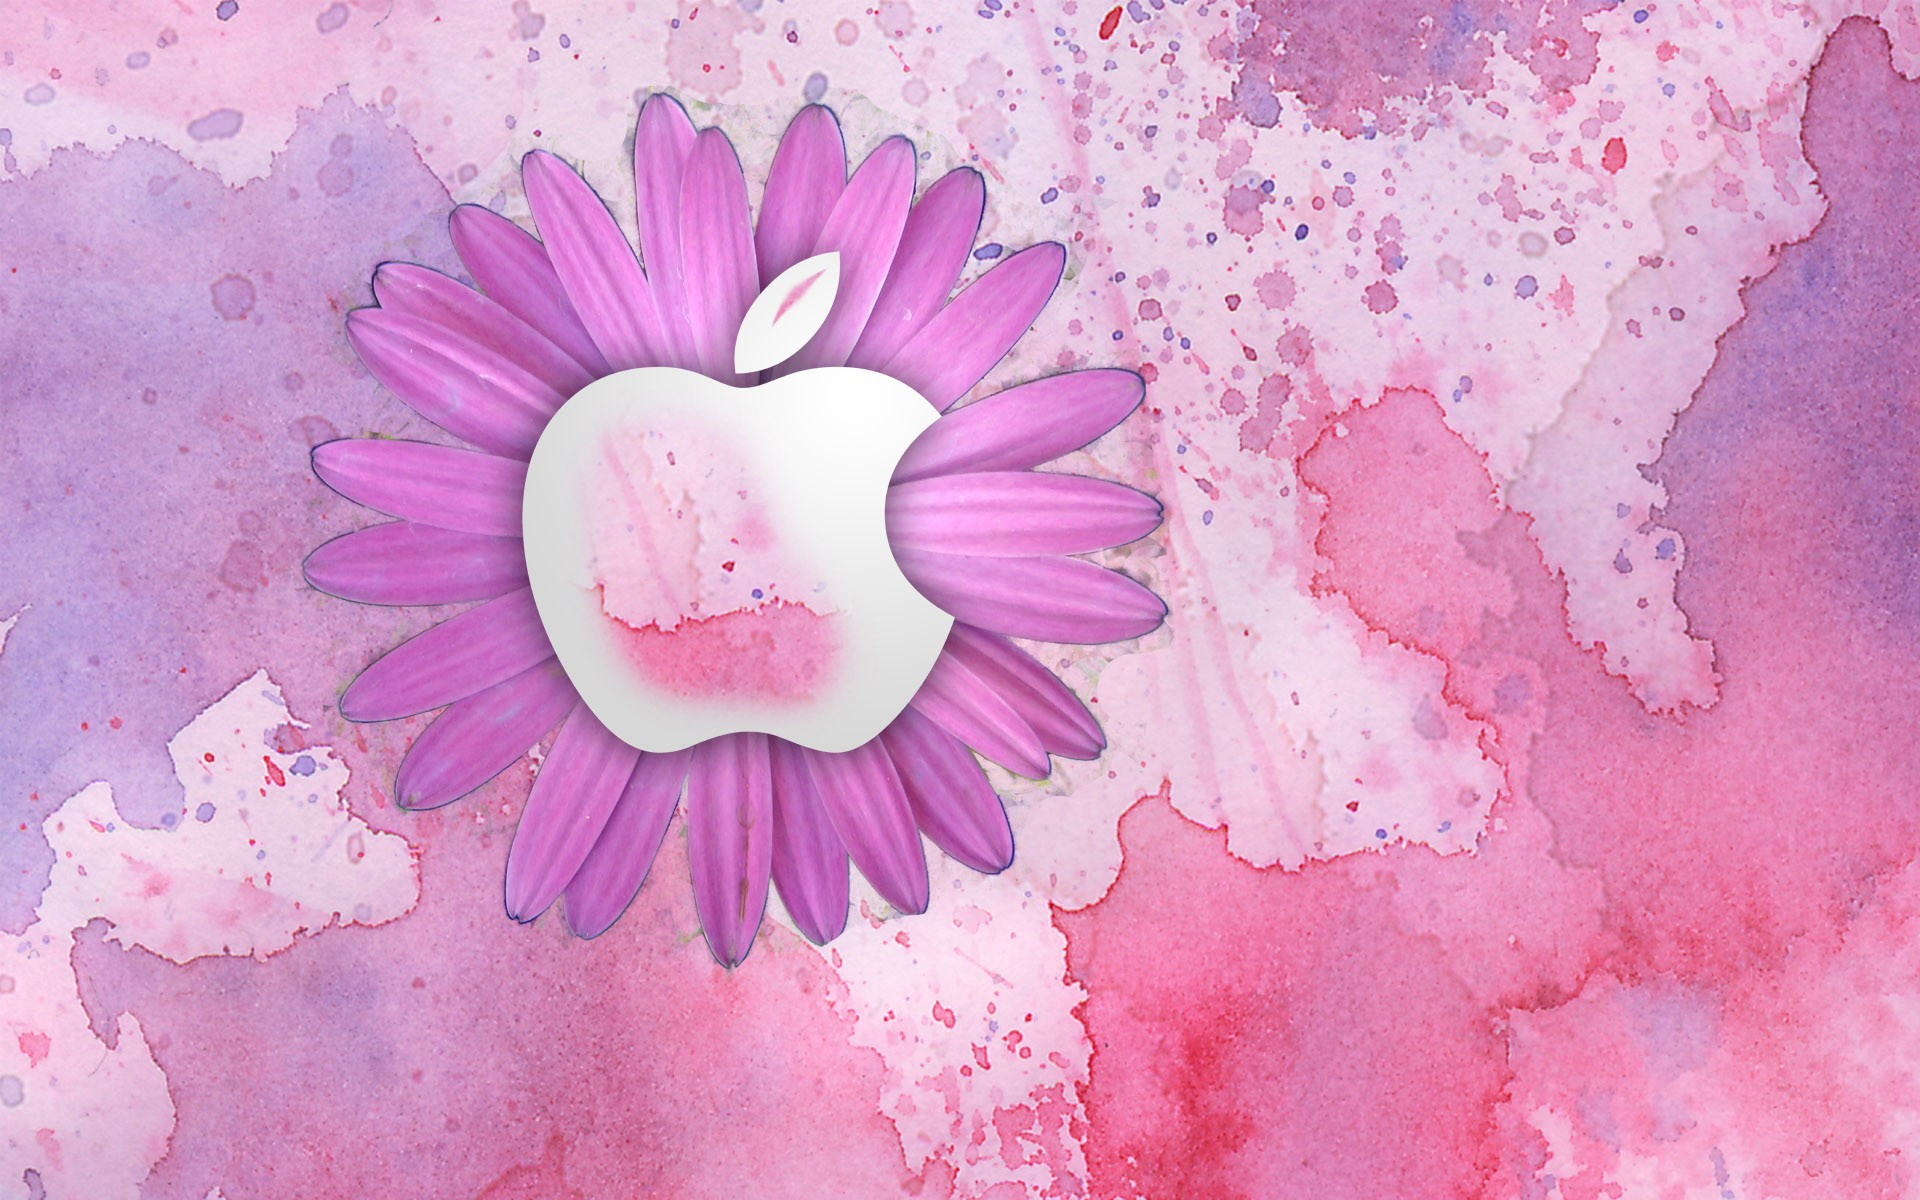 Cute Shelf Wallpaper For Ipad 47 Backgrounds For Girls 183 ① Download Free Stunning Hd